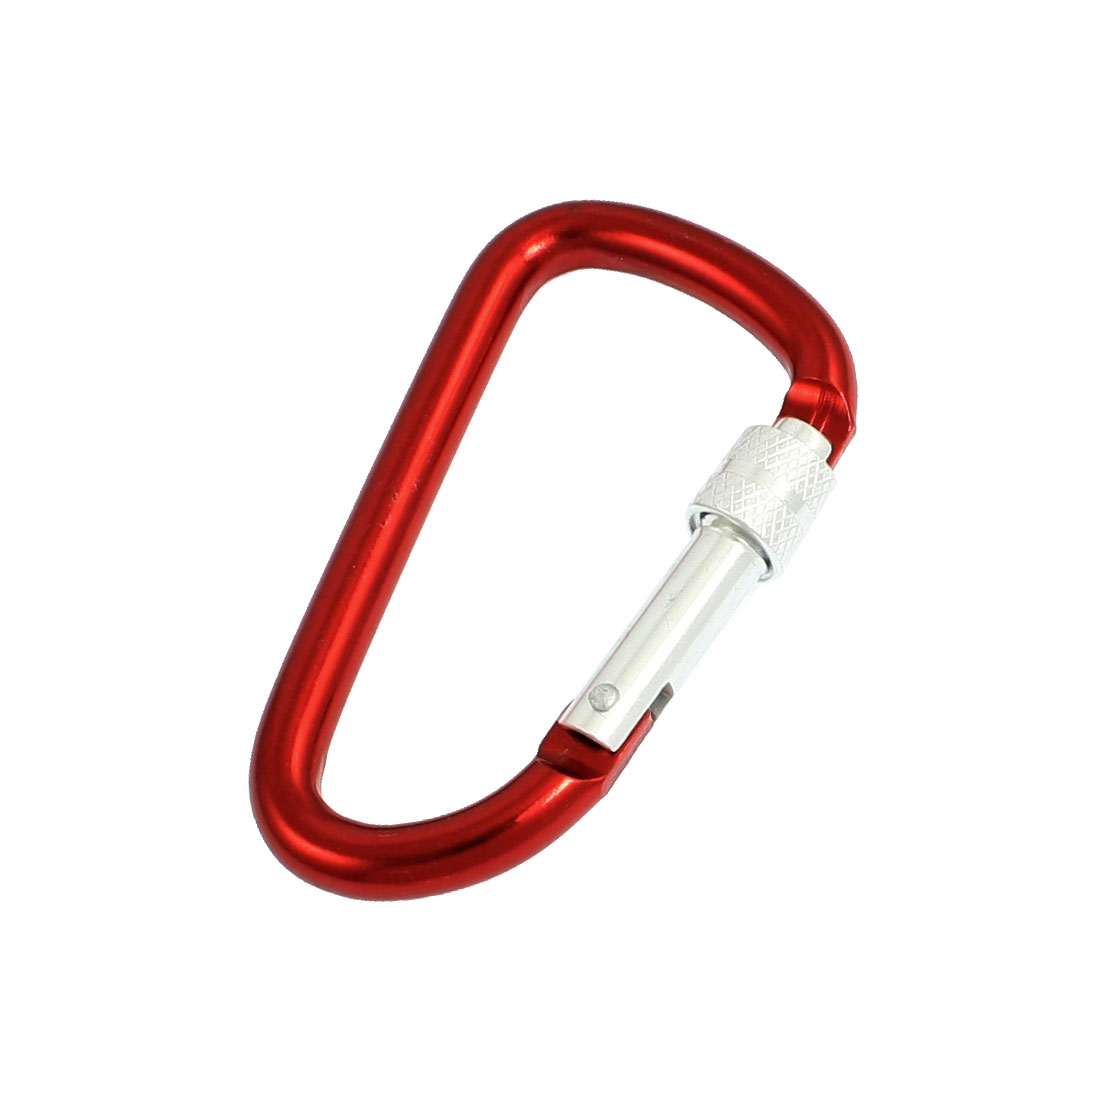 Camping Spring Loaded D Shape Red Aluminum Alloy Locking Carabiner